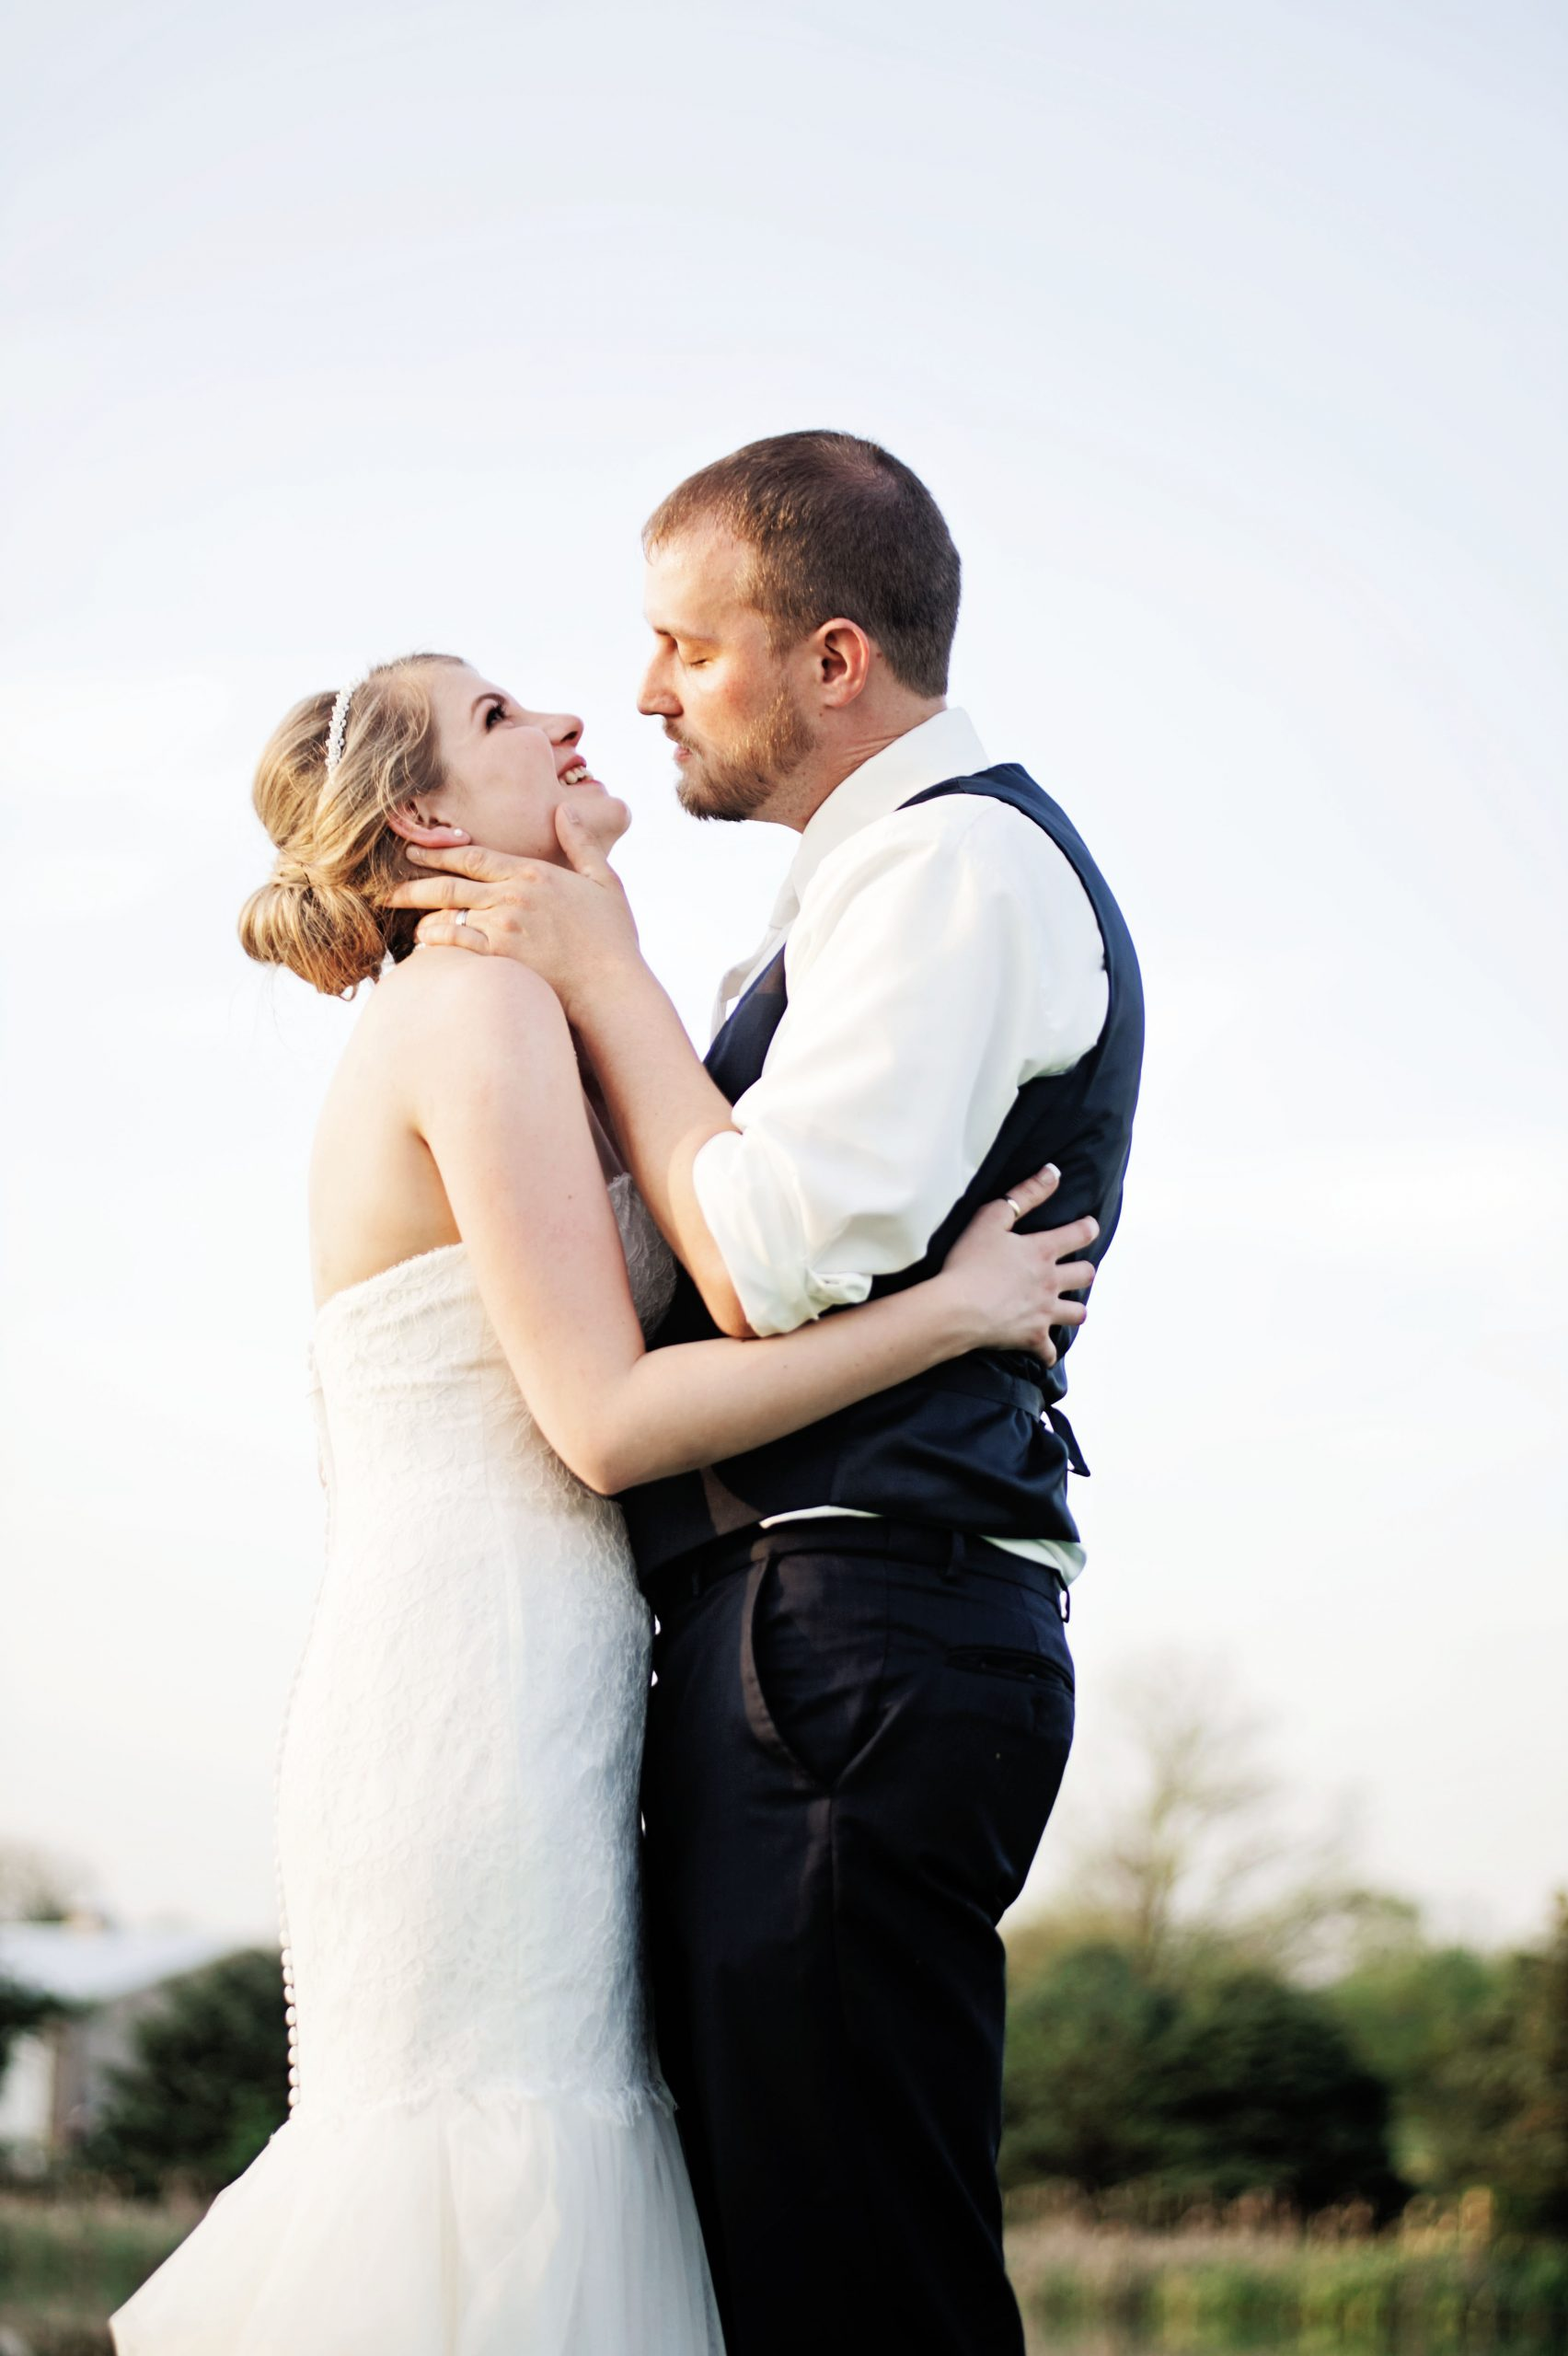 Kady and Ricky had the privilege of celebrating their wedding at Lakeview Farms in York, PA this past Spring. Kady is overwhelmed with emotion, while Ricky takes in his forever bride. Featured on Dream Weddings.